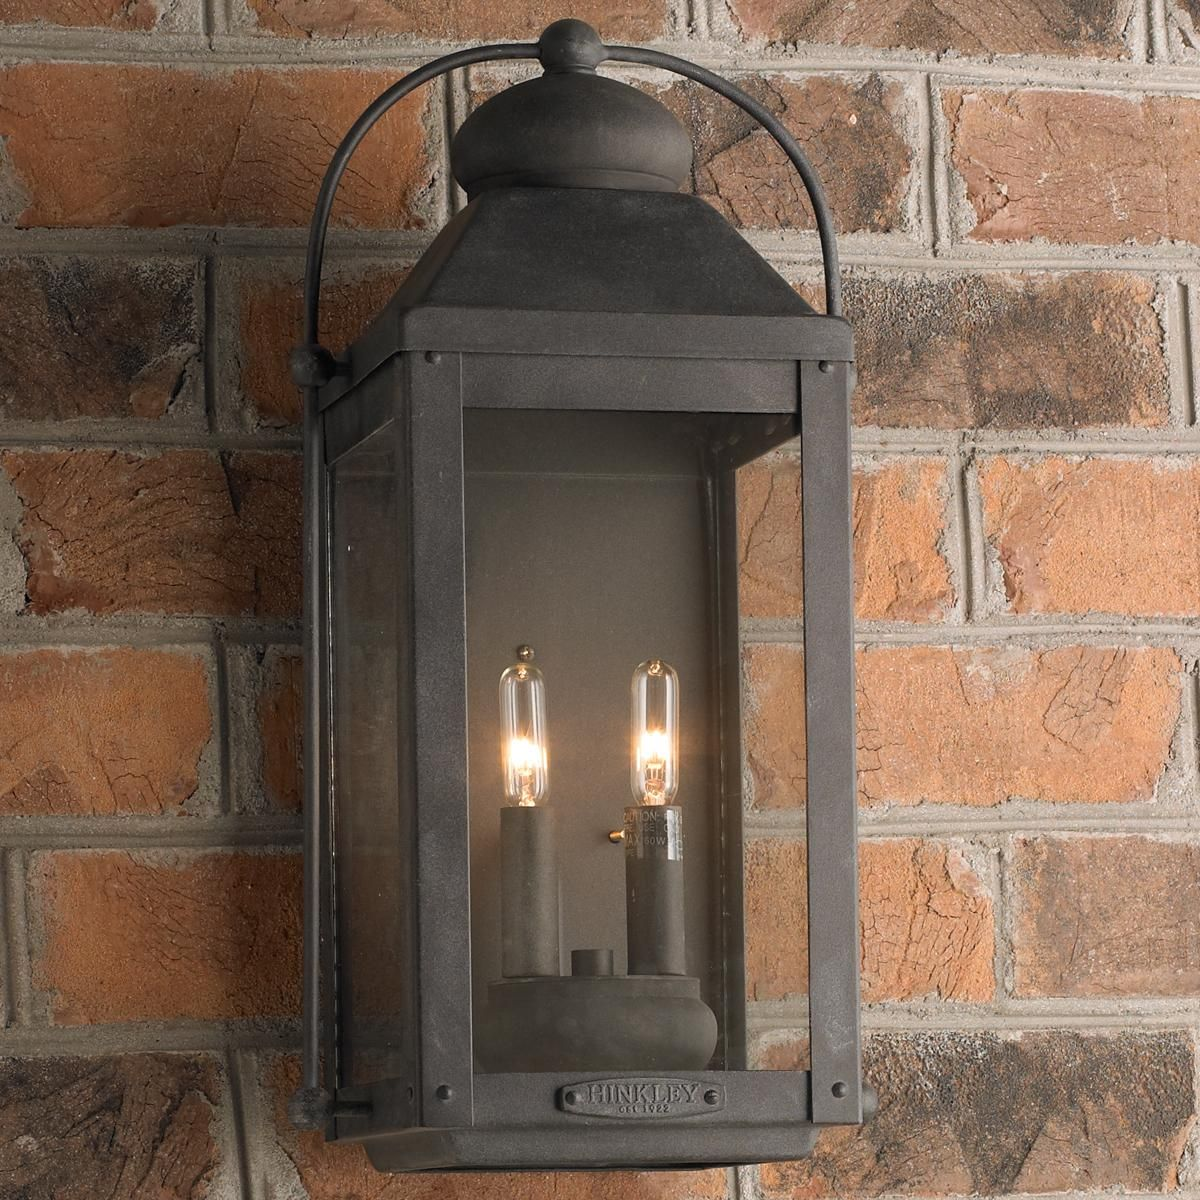 Superb Nostalgic Arched Carriage Outdoor Light   Small